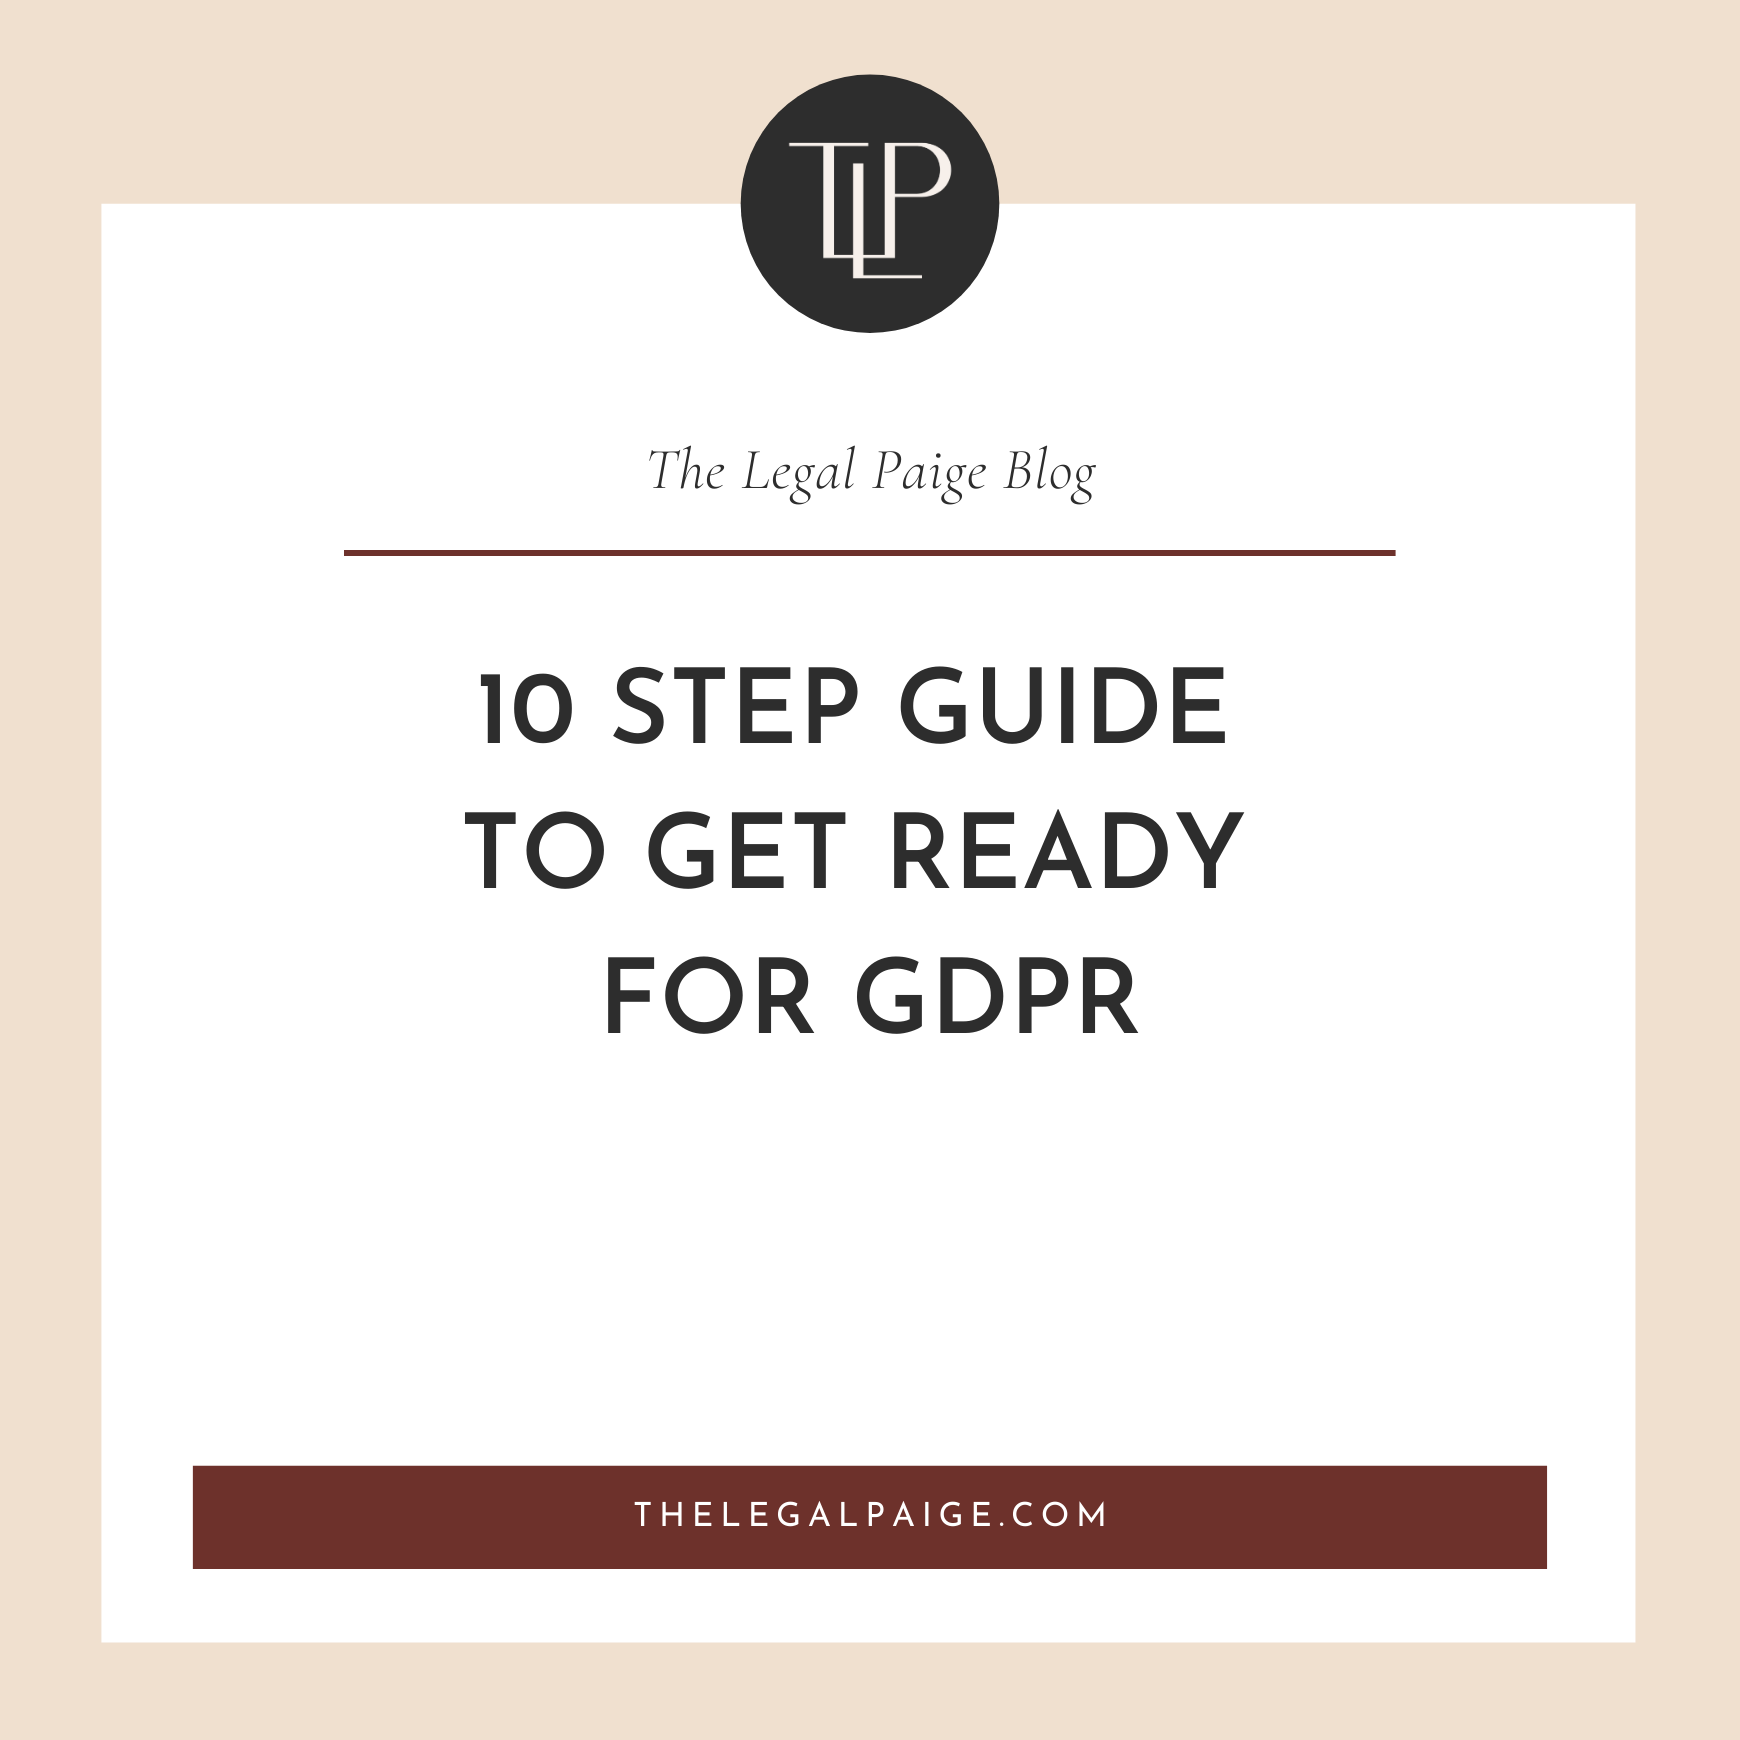 Your 10 Step Guide to Get Ready for GDPR